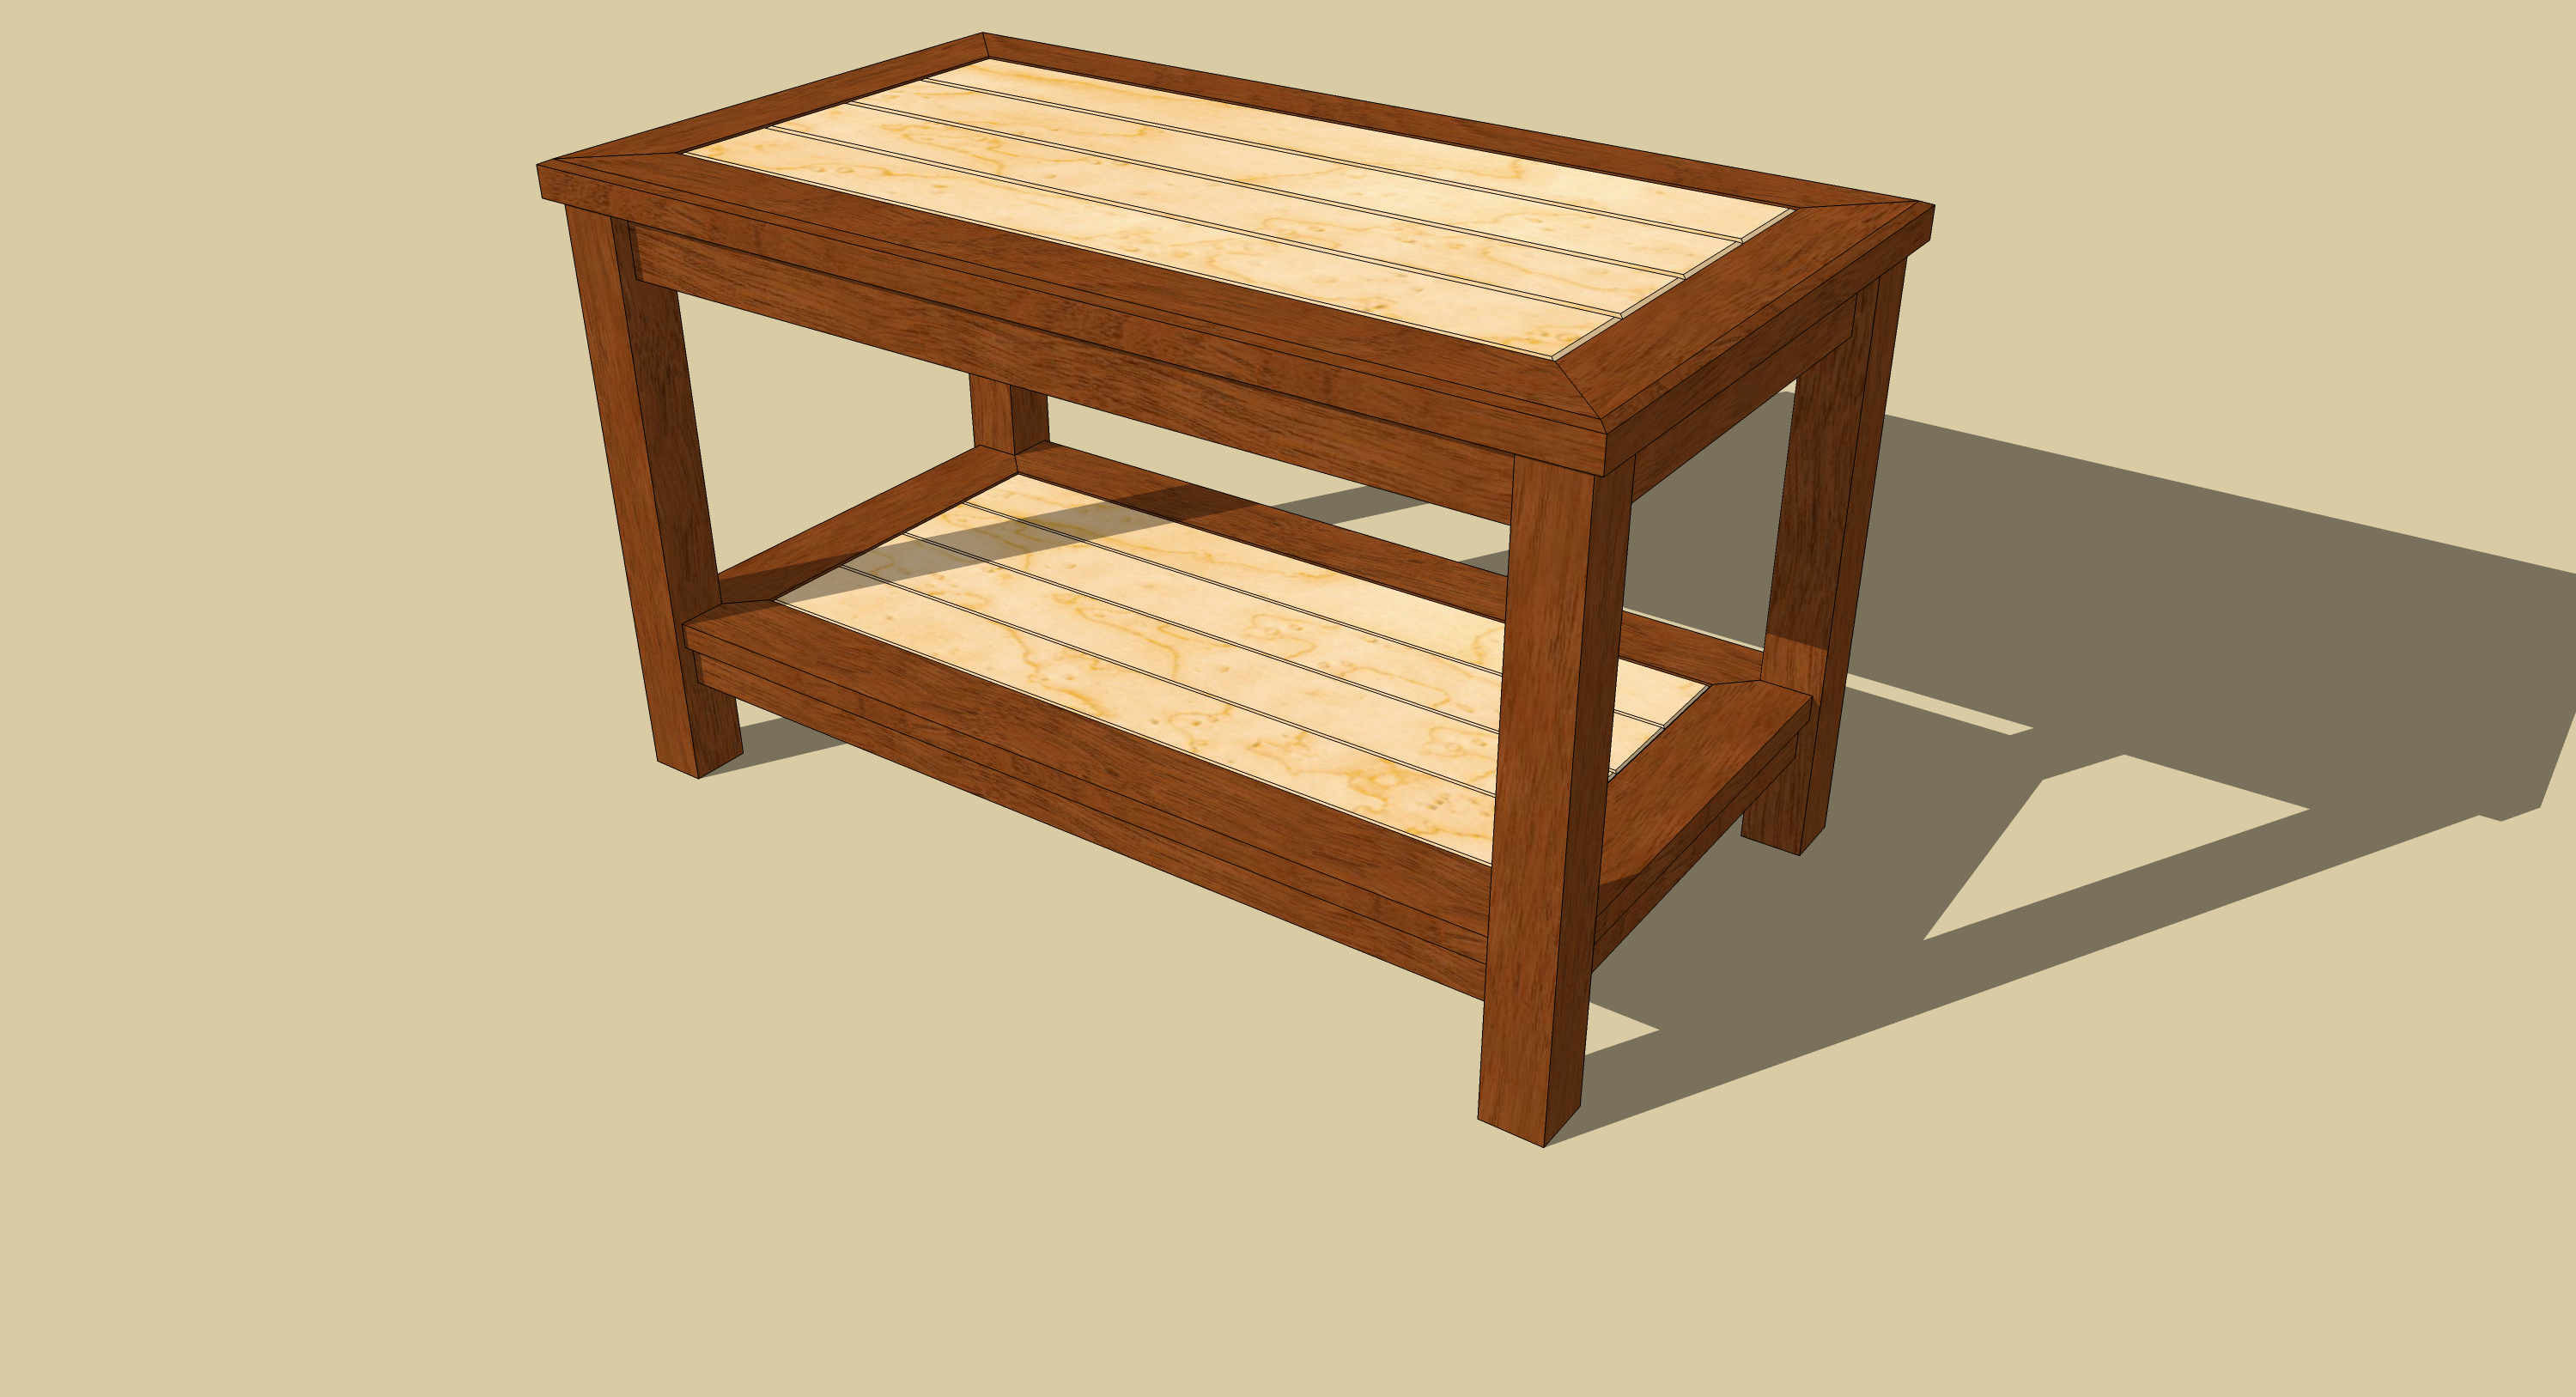 Diy woodworking plan coffee table wooden pdf balsa wood